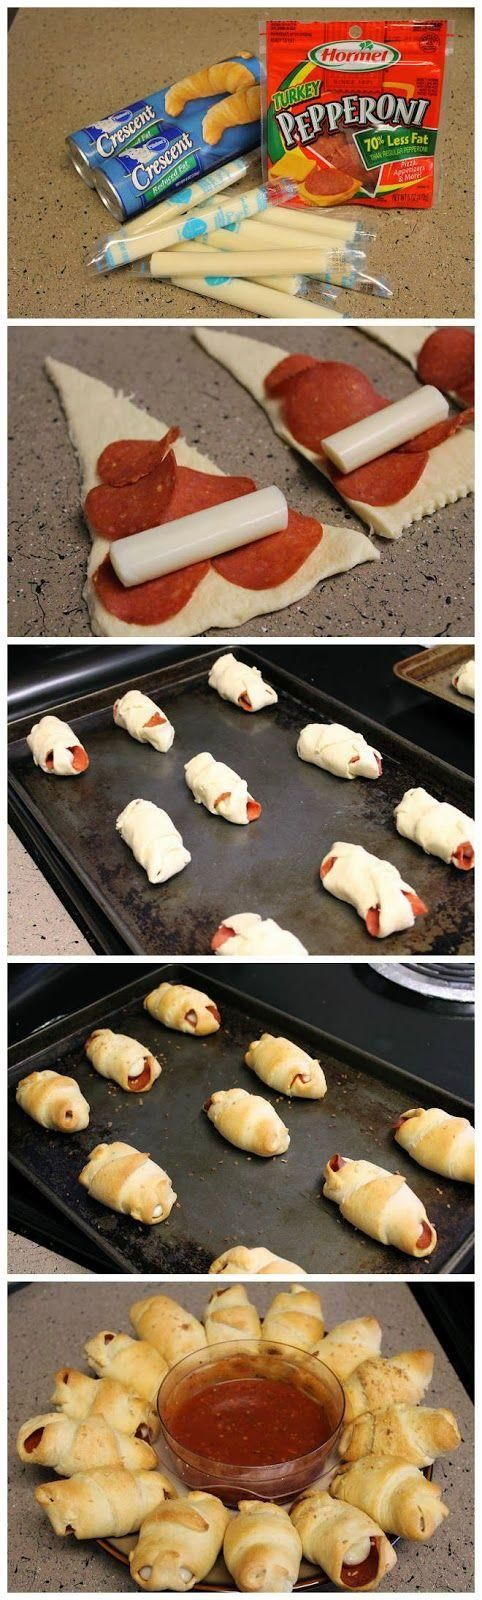 Crescent Pepperoni Roll-Ups - Joybx